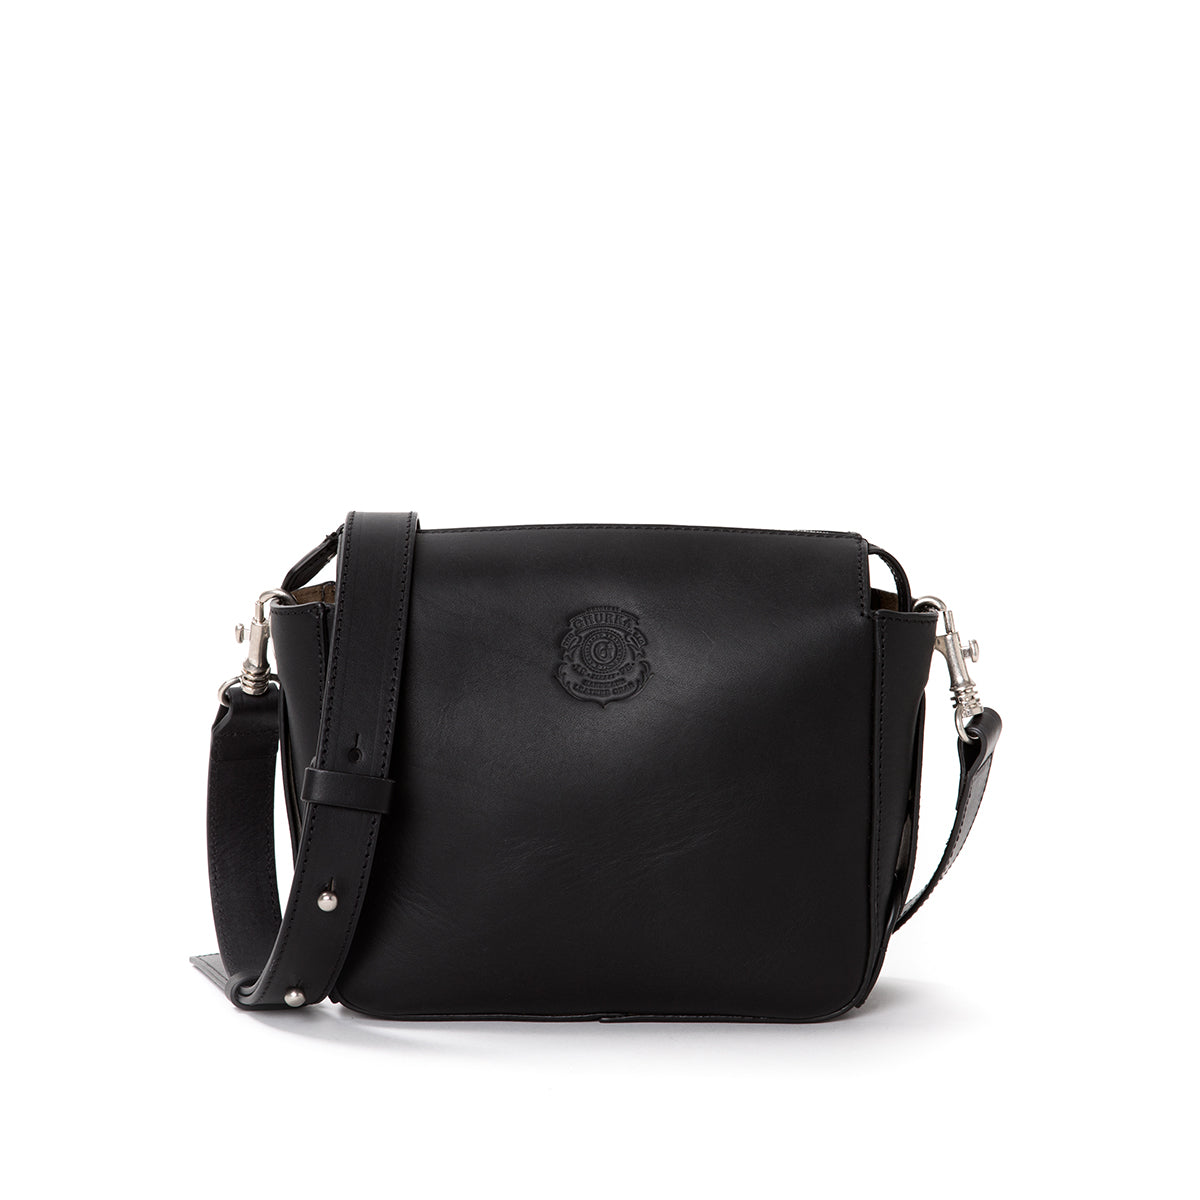 Tilley No. 760 | Black Leather